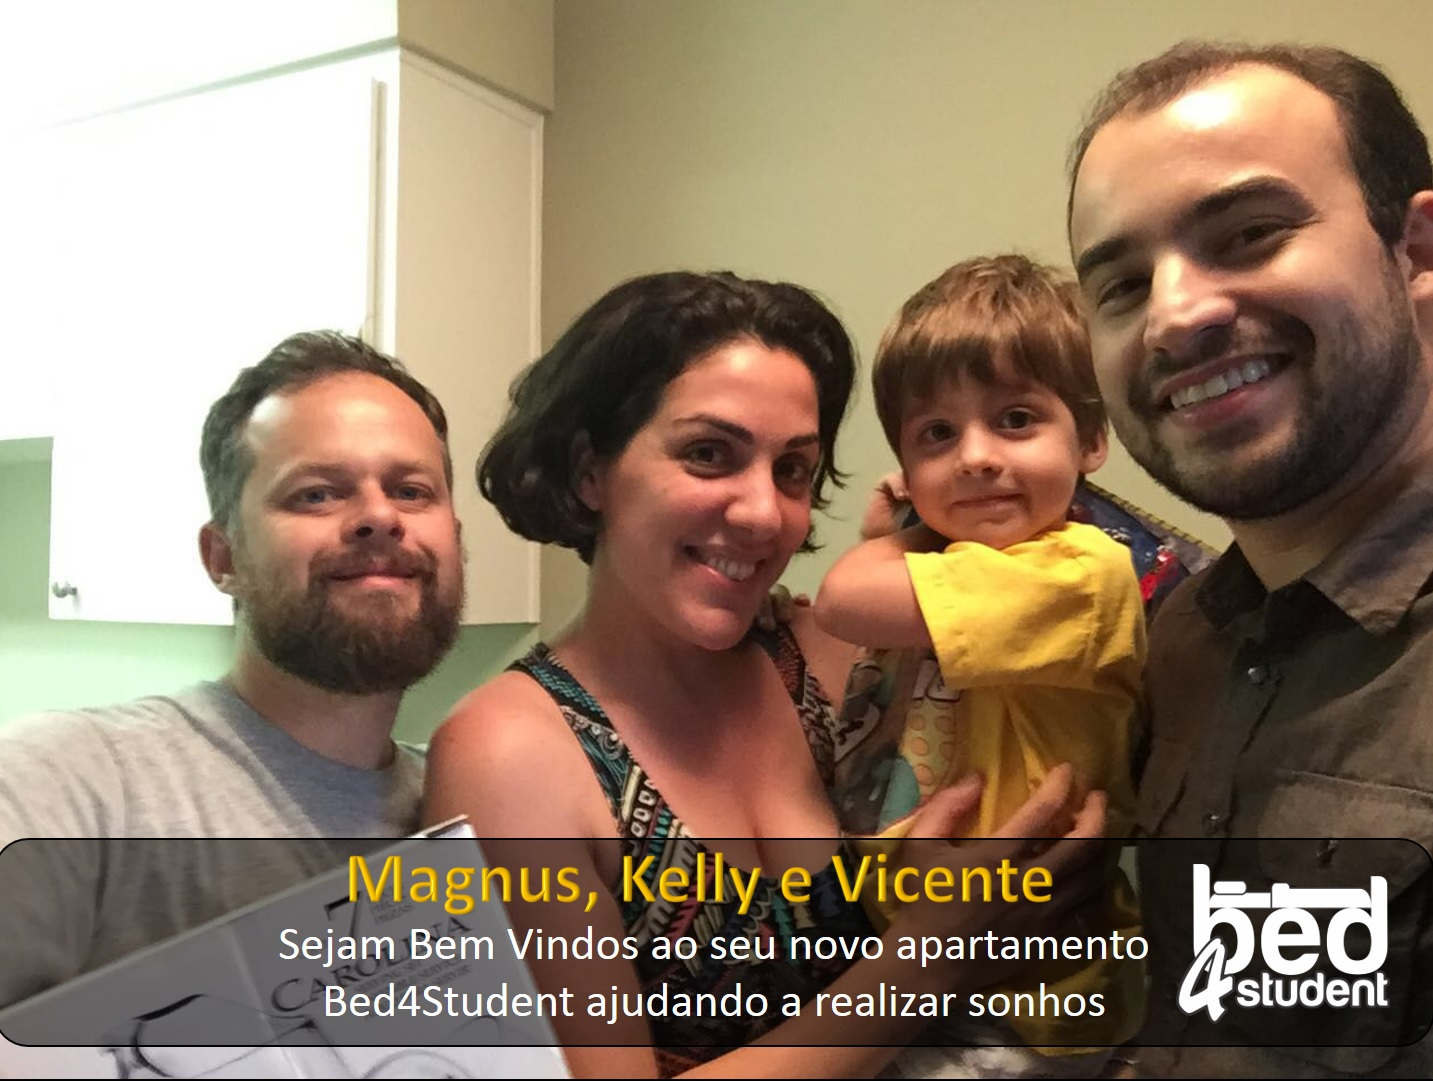 Magnus, kelly e Vicente